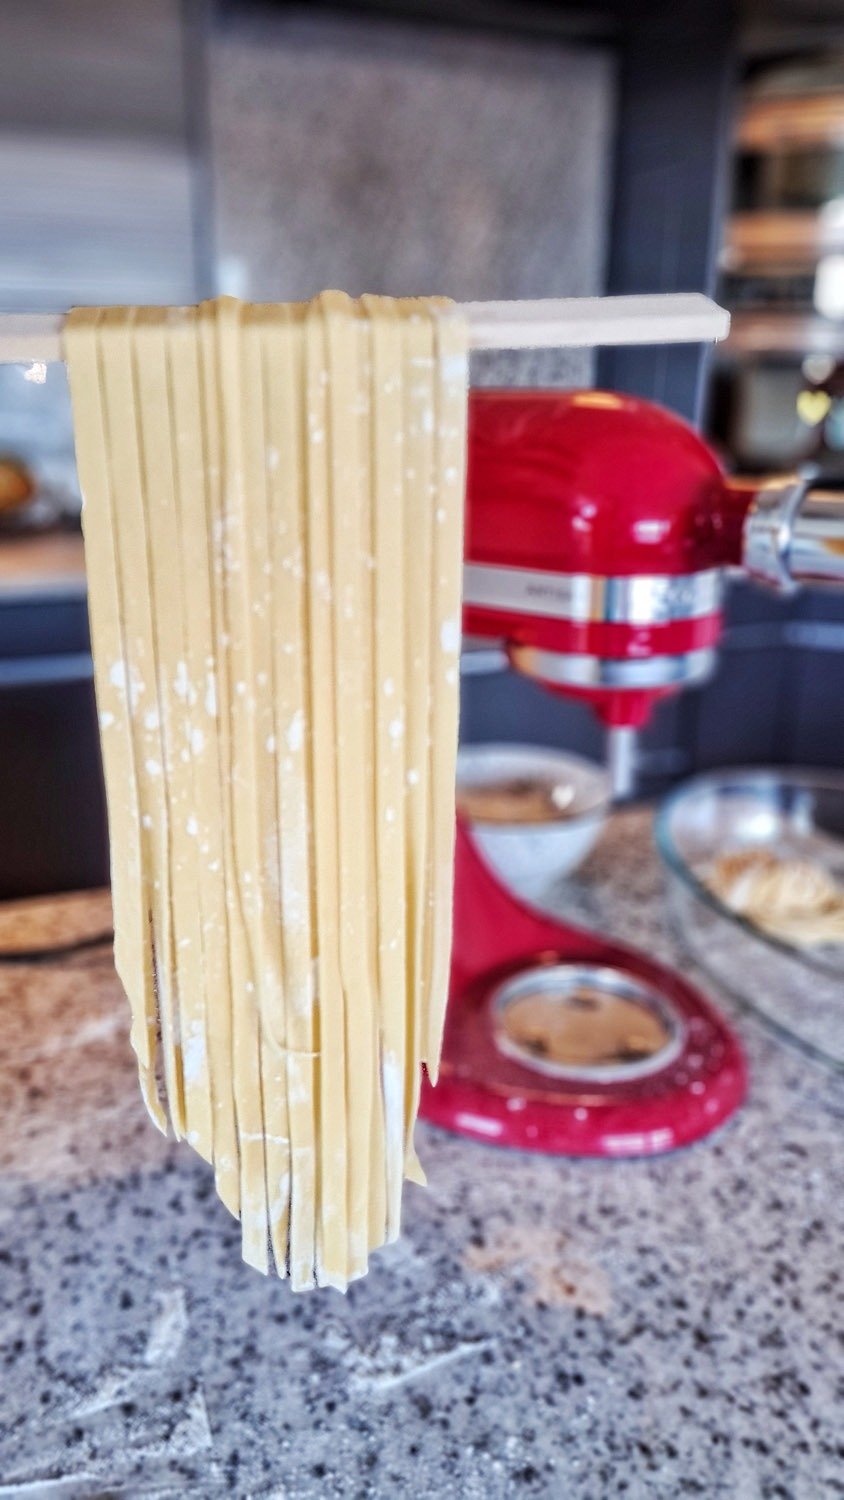 Homemade Fettuccine with the Kitchenaid